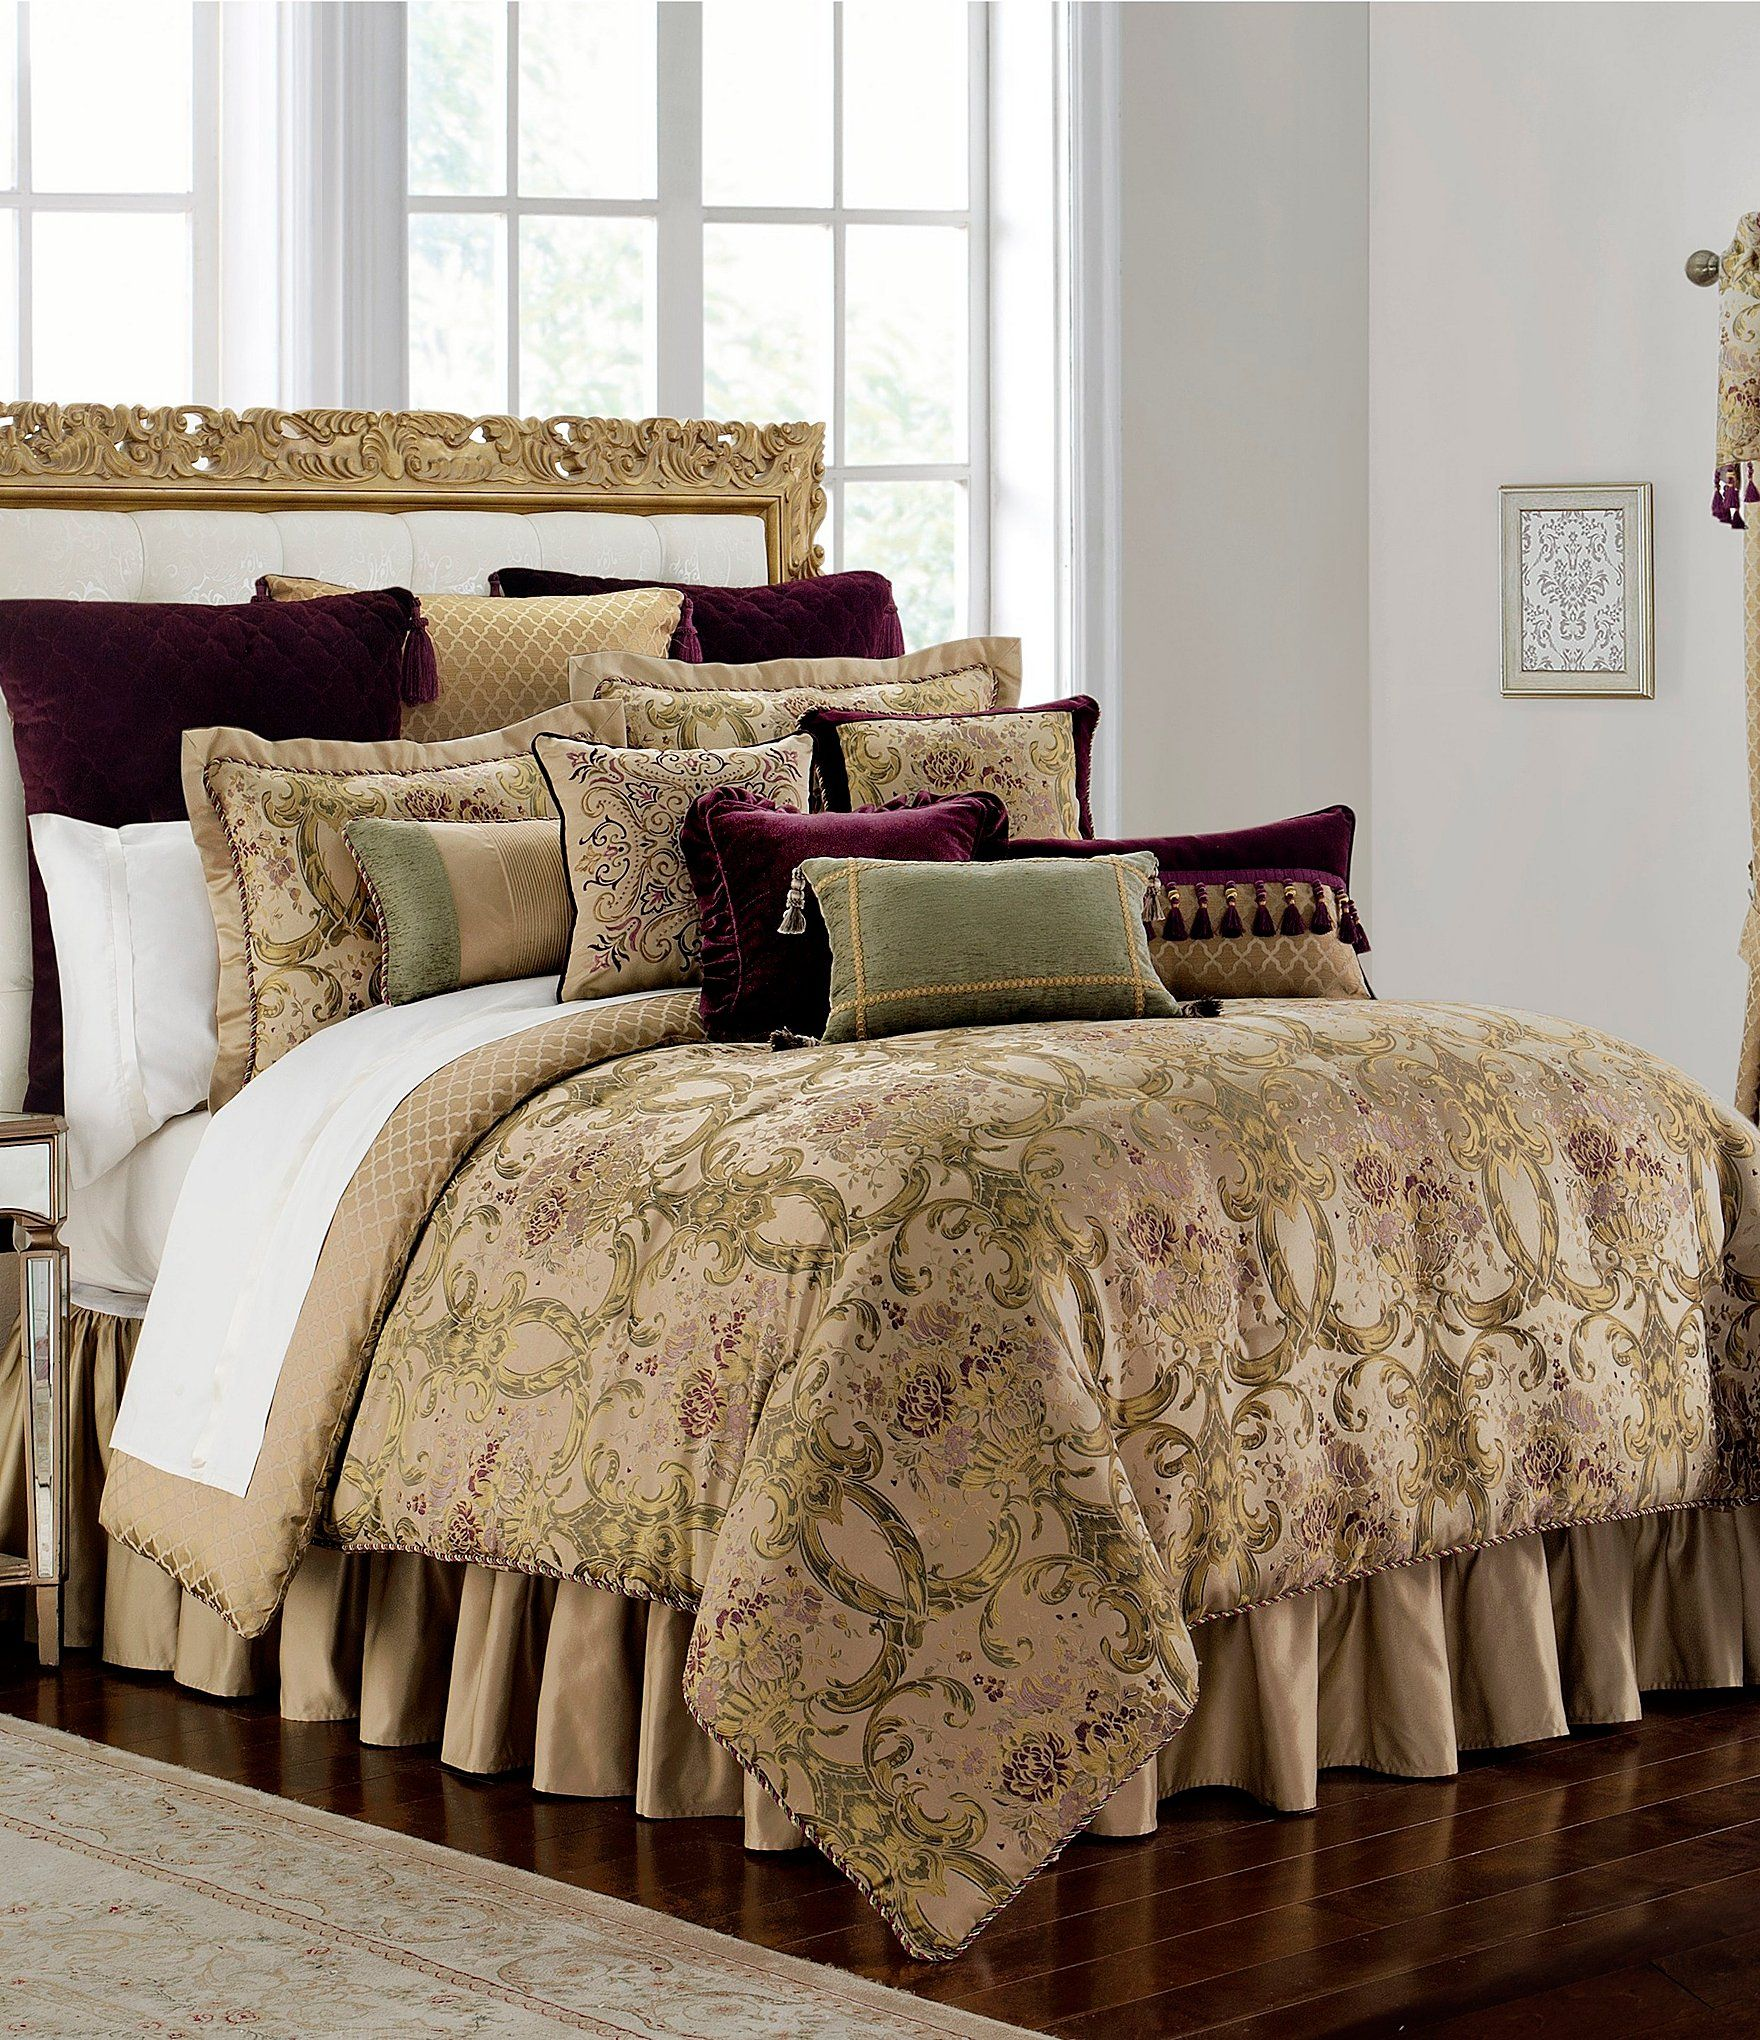 tall collections center living ralph brands clearance finale furniture dresser distinction ebay full outlet dillards lauren art closeout weathered horchow nordstrom high collection end damask comforter bedroom guinevere croscill southern home bedding sets